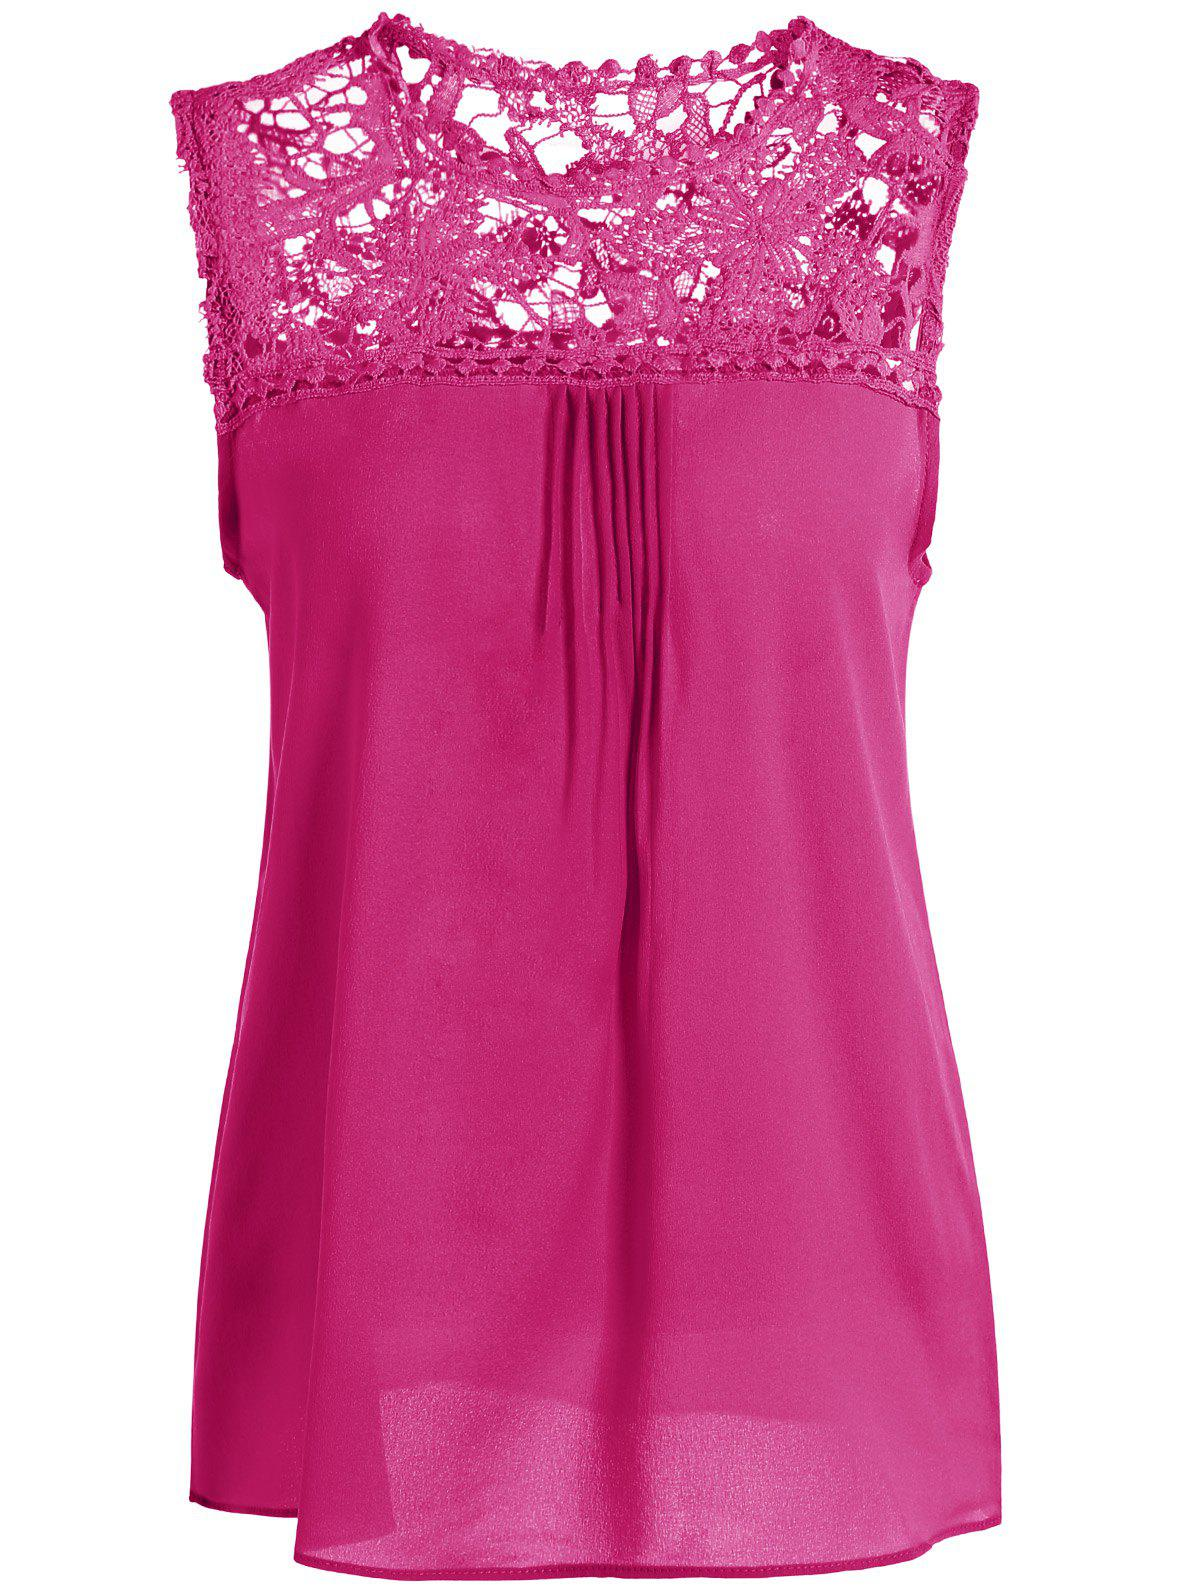 Openwork Lace Spliced Shirred Tank Top - ROSE RED 4XL